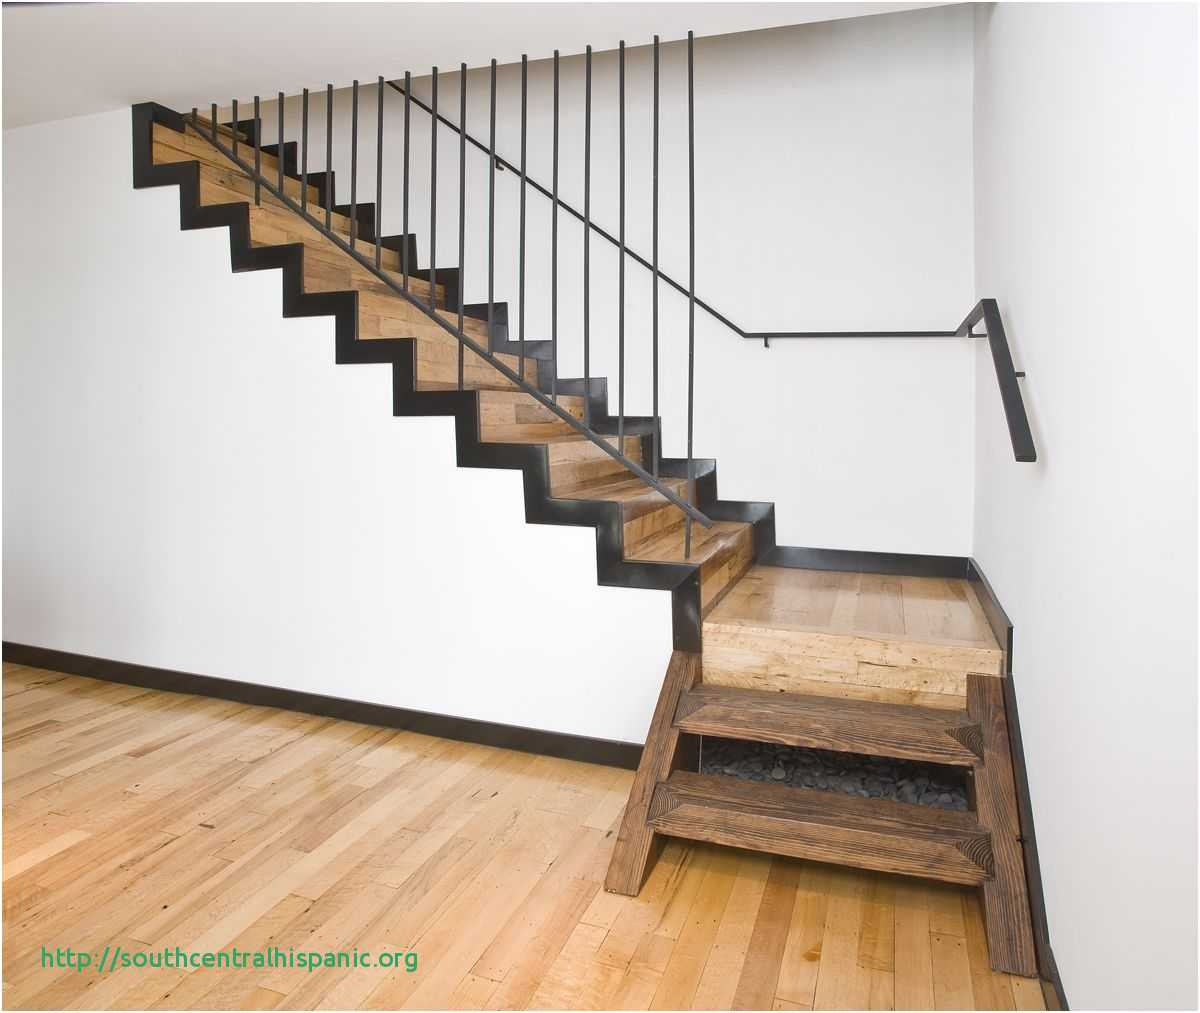 lowes hardwood flooring installation of how to put in laminate flooring a‰lagant laminate wood flooring lowes regarding how to put in laminate flooring inspirant how to install laminate flooring stairs with railing stock